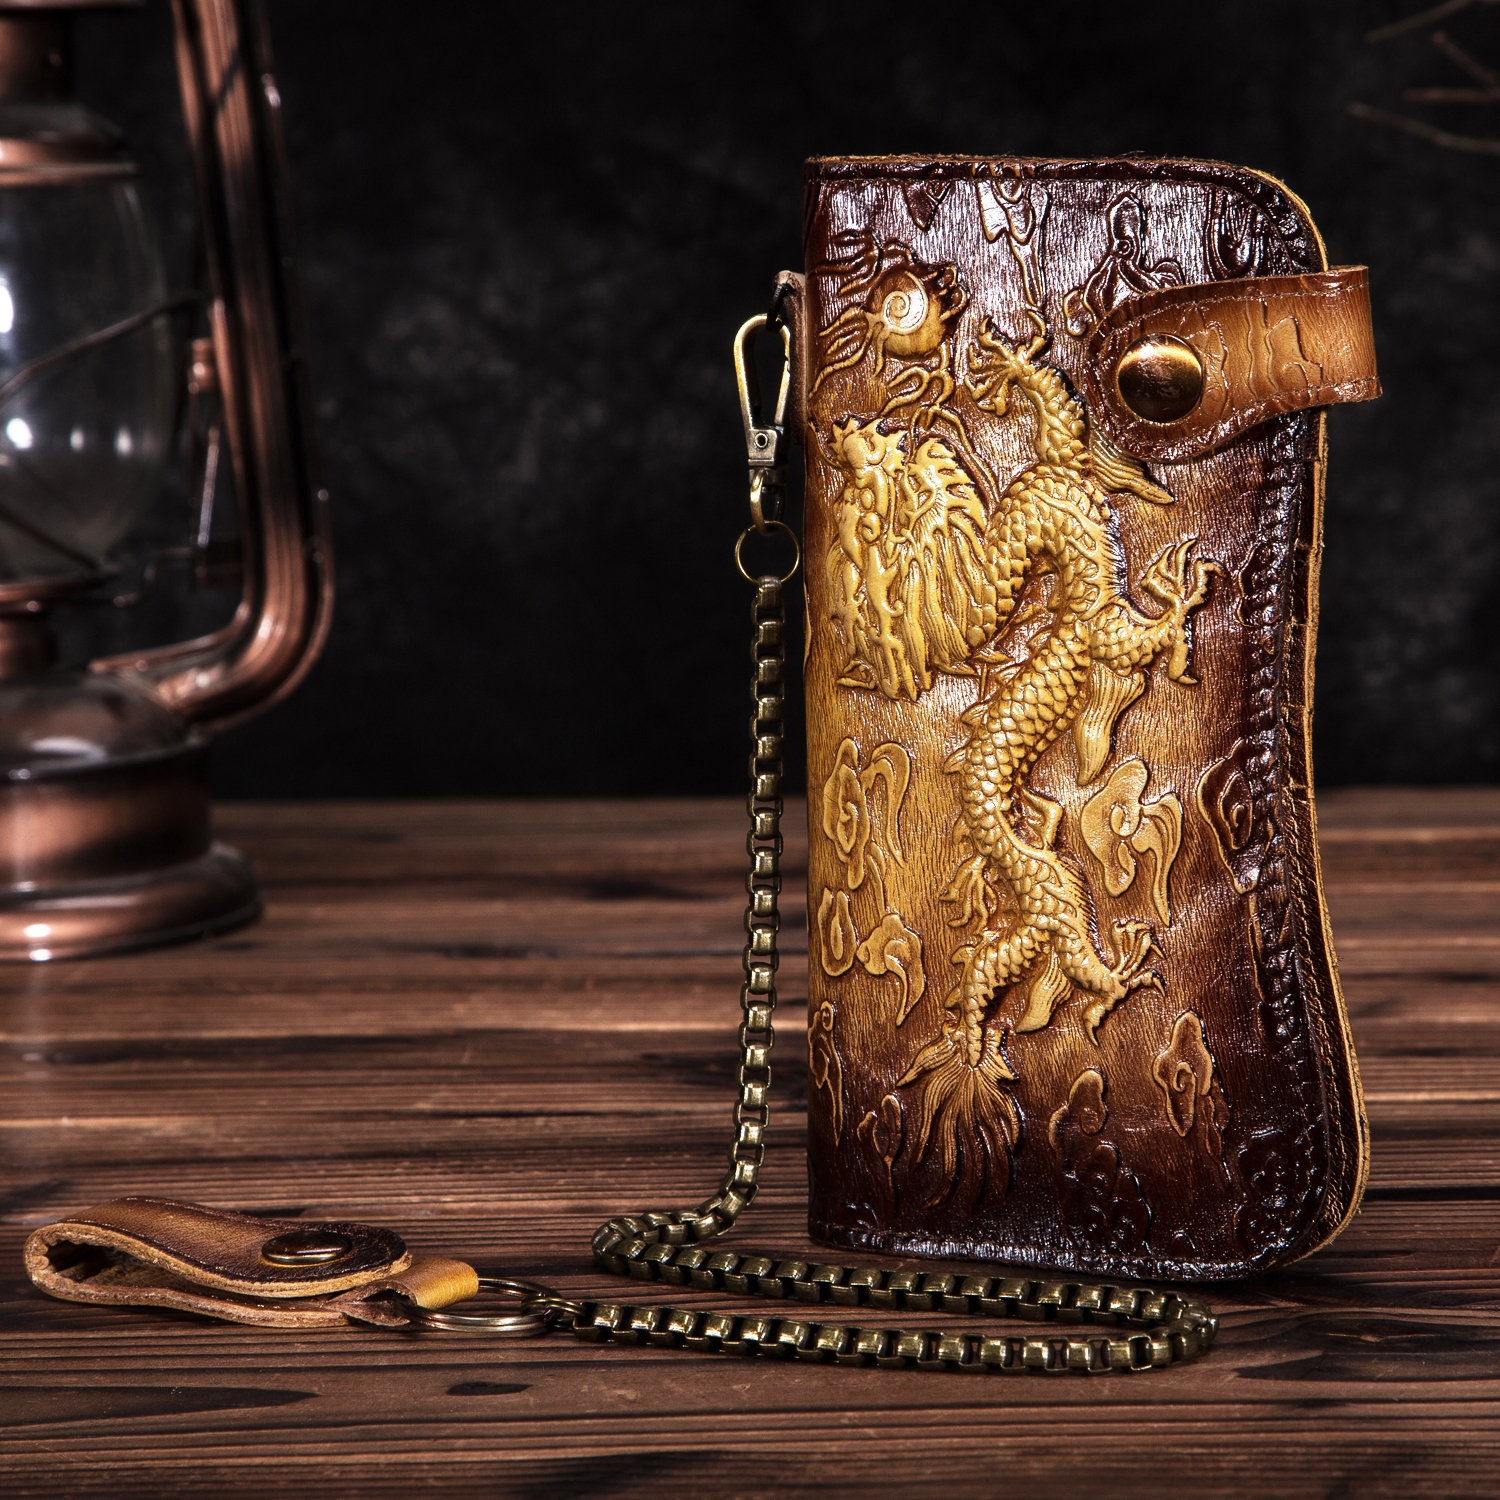 Cattle Male Genuine Leather Dargon Tiger Emboss Fashion Checkbook Iron Chain Organizer Wallet Purse Design Clutch Handbag 1088